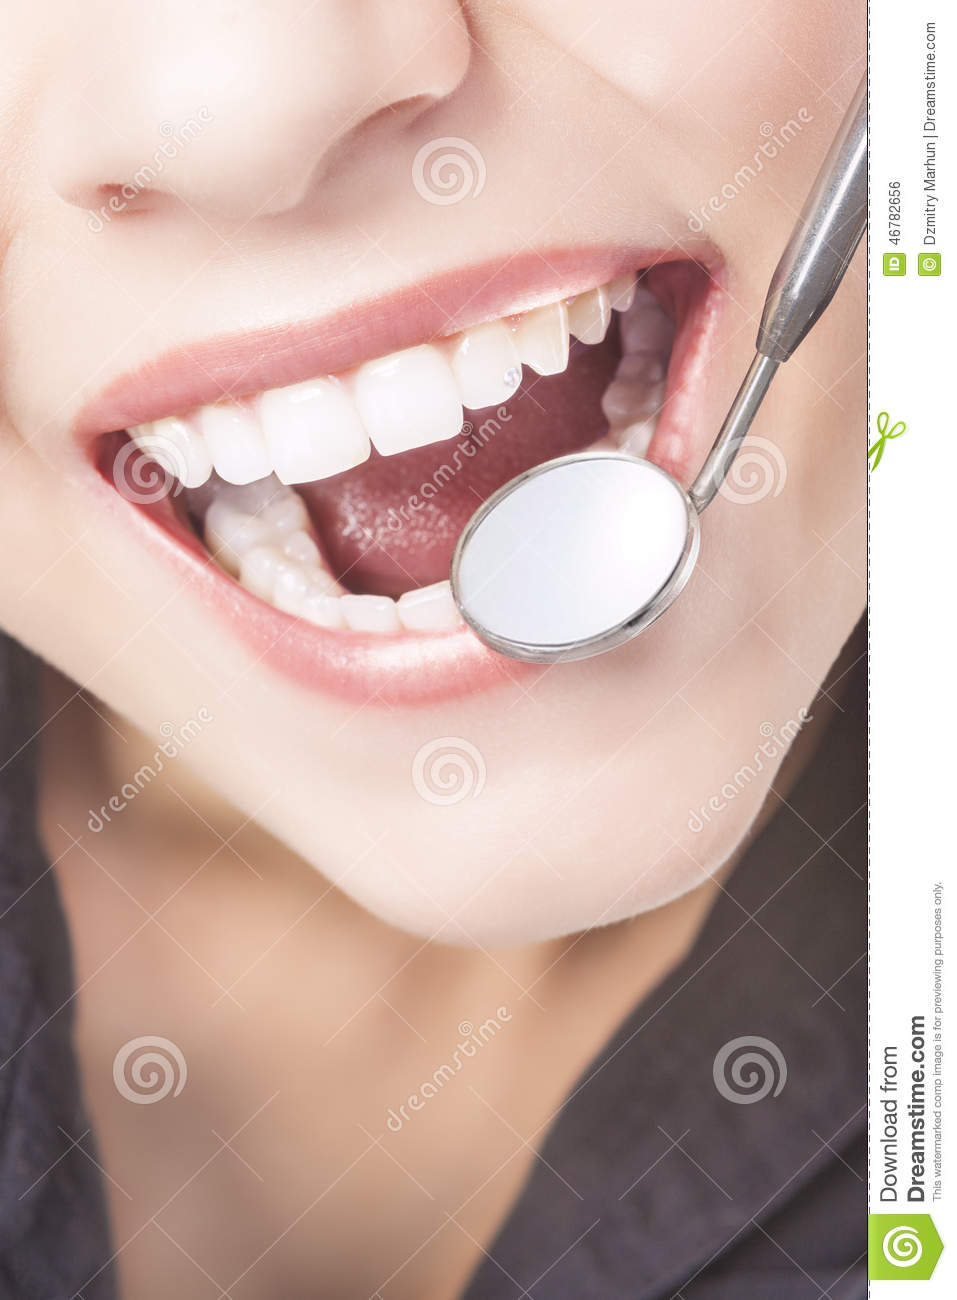 Caucasian Woman White Teeth With Dentist Mouth Mirror Stock Photo Image 46782656